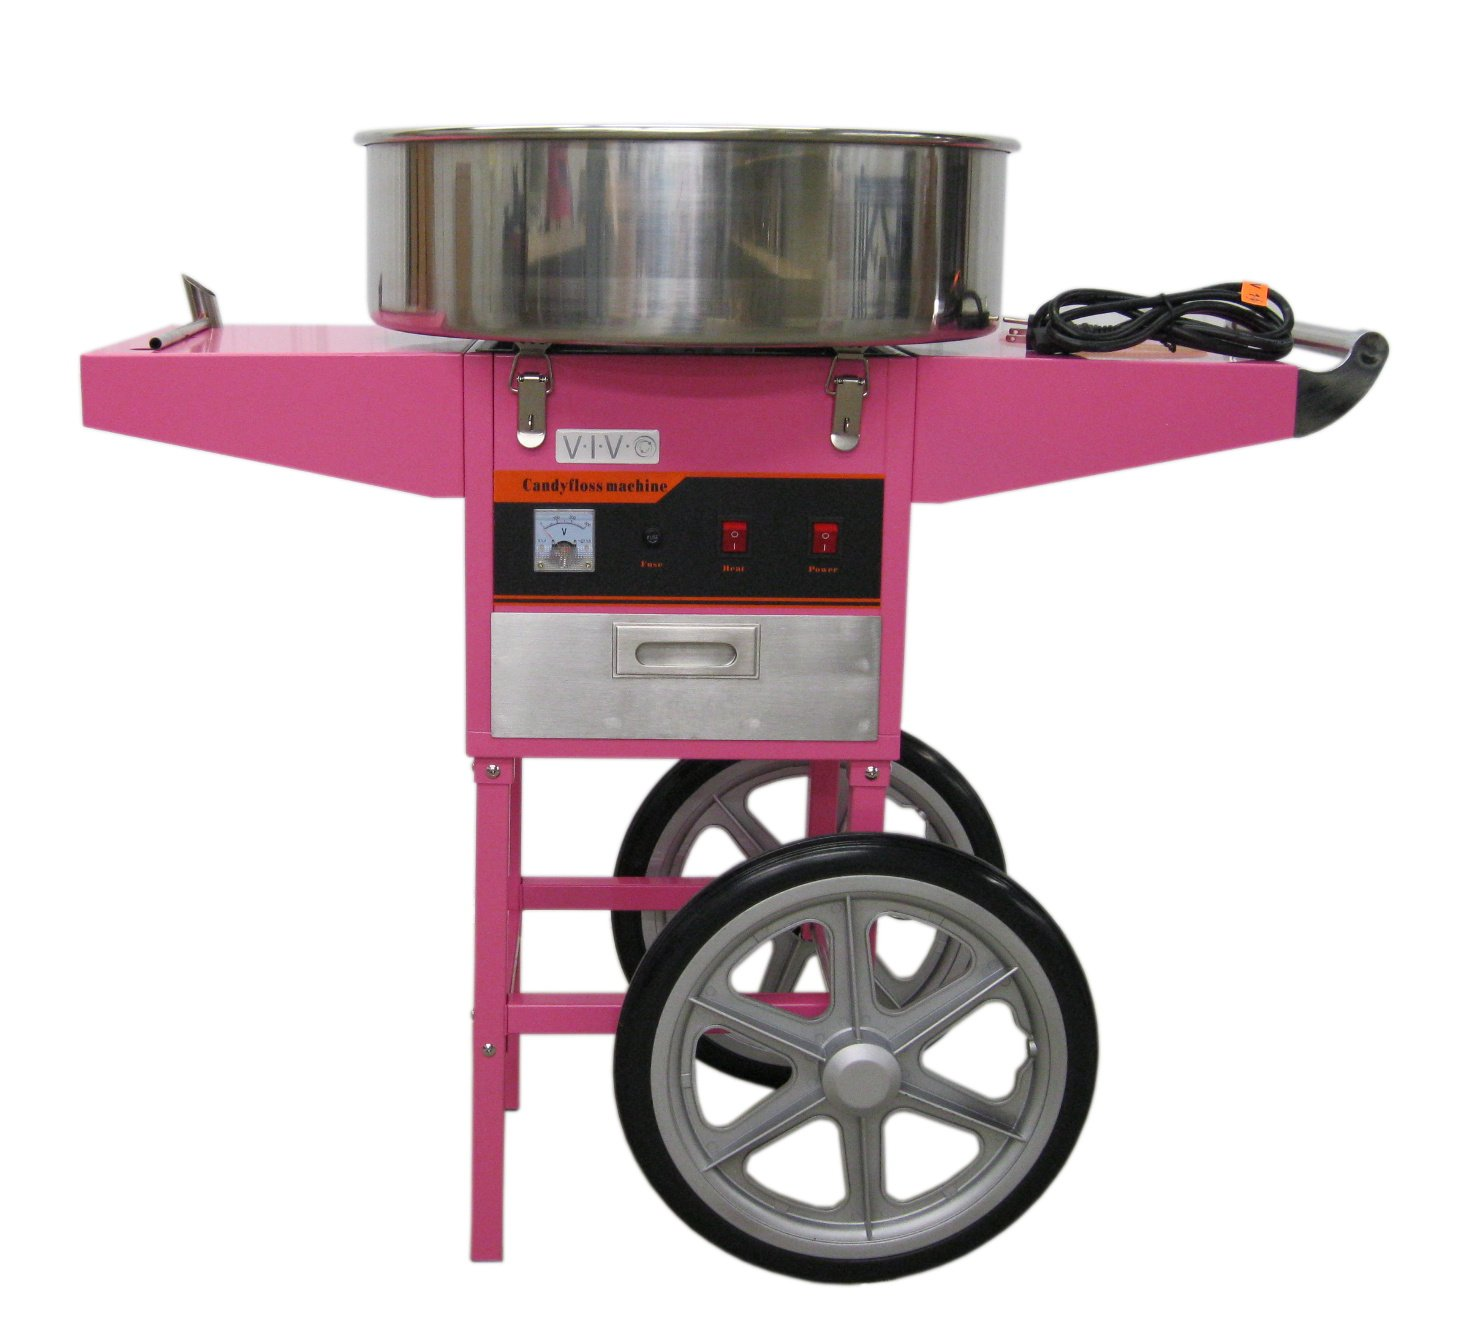 Electric Commercial Cotton Candy Machine/Candy Floss Maker Pink Cart Stand VIVO (CANDY-V002)